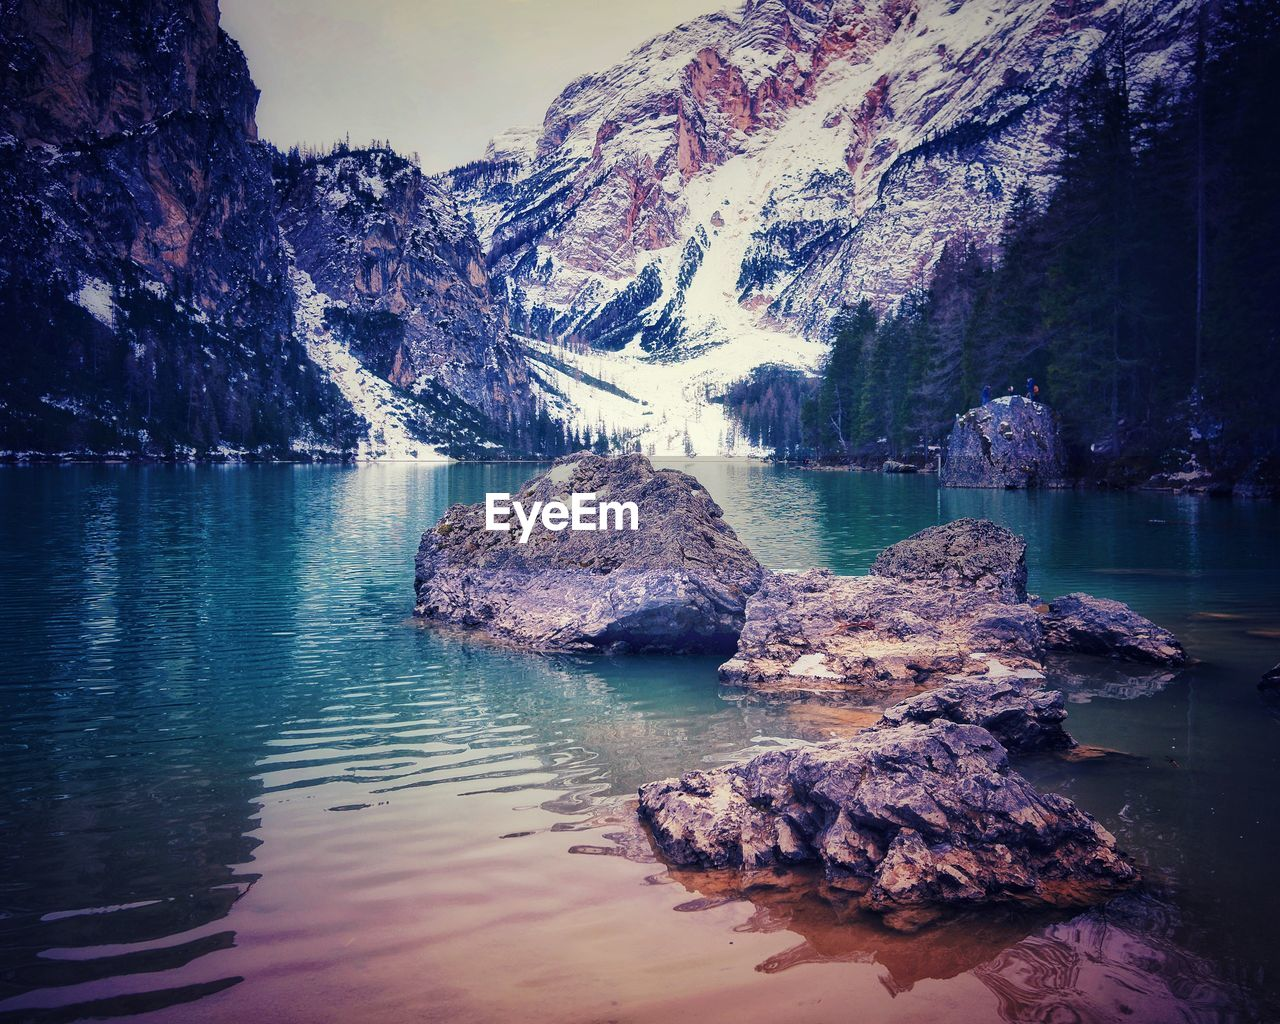 water, beauty in nature, scenics - nature, tranquility, tranquil scene, mountain, reflection, rock, lake, waterfront, rock - object, nature, solid, non-urban scene, rock formation, idyllic, no people, mountain range, sky, outdoors, formation